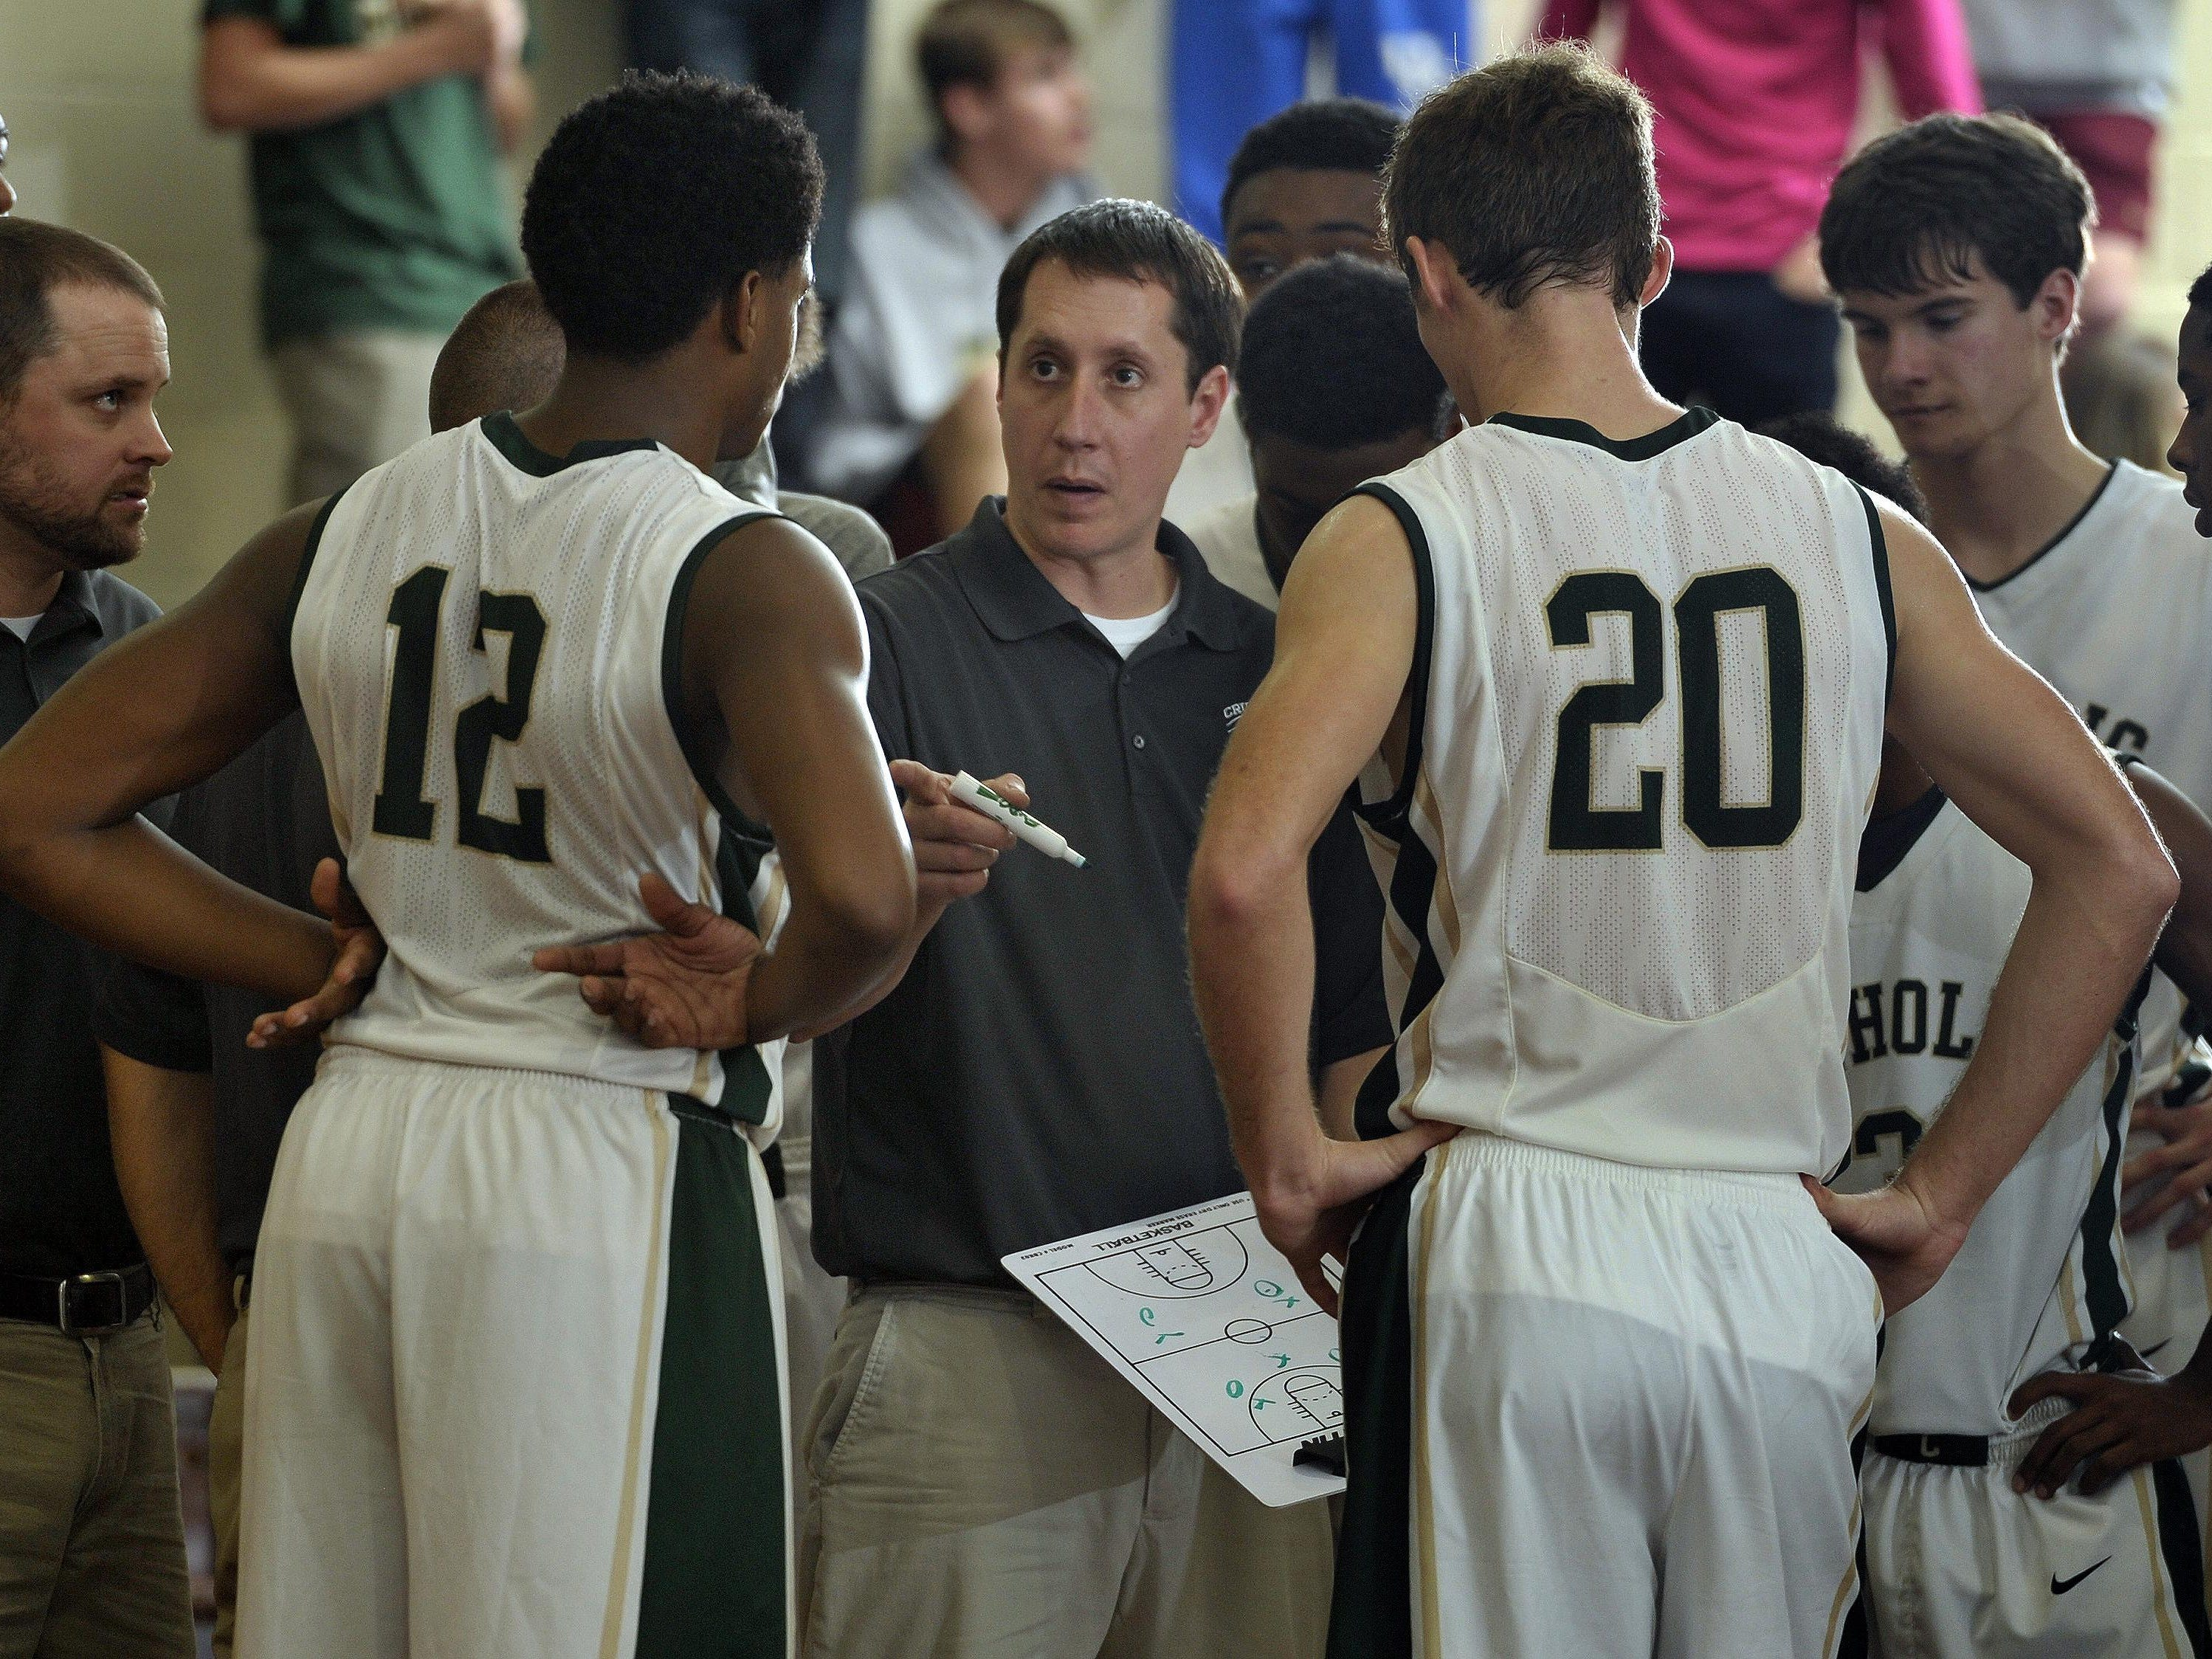 Catholic coach Nick Mead tries to map out a strategy for his team in the closing minutes of their game in 2014 against Lakeshore High.